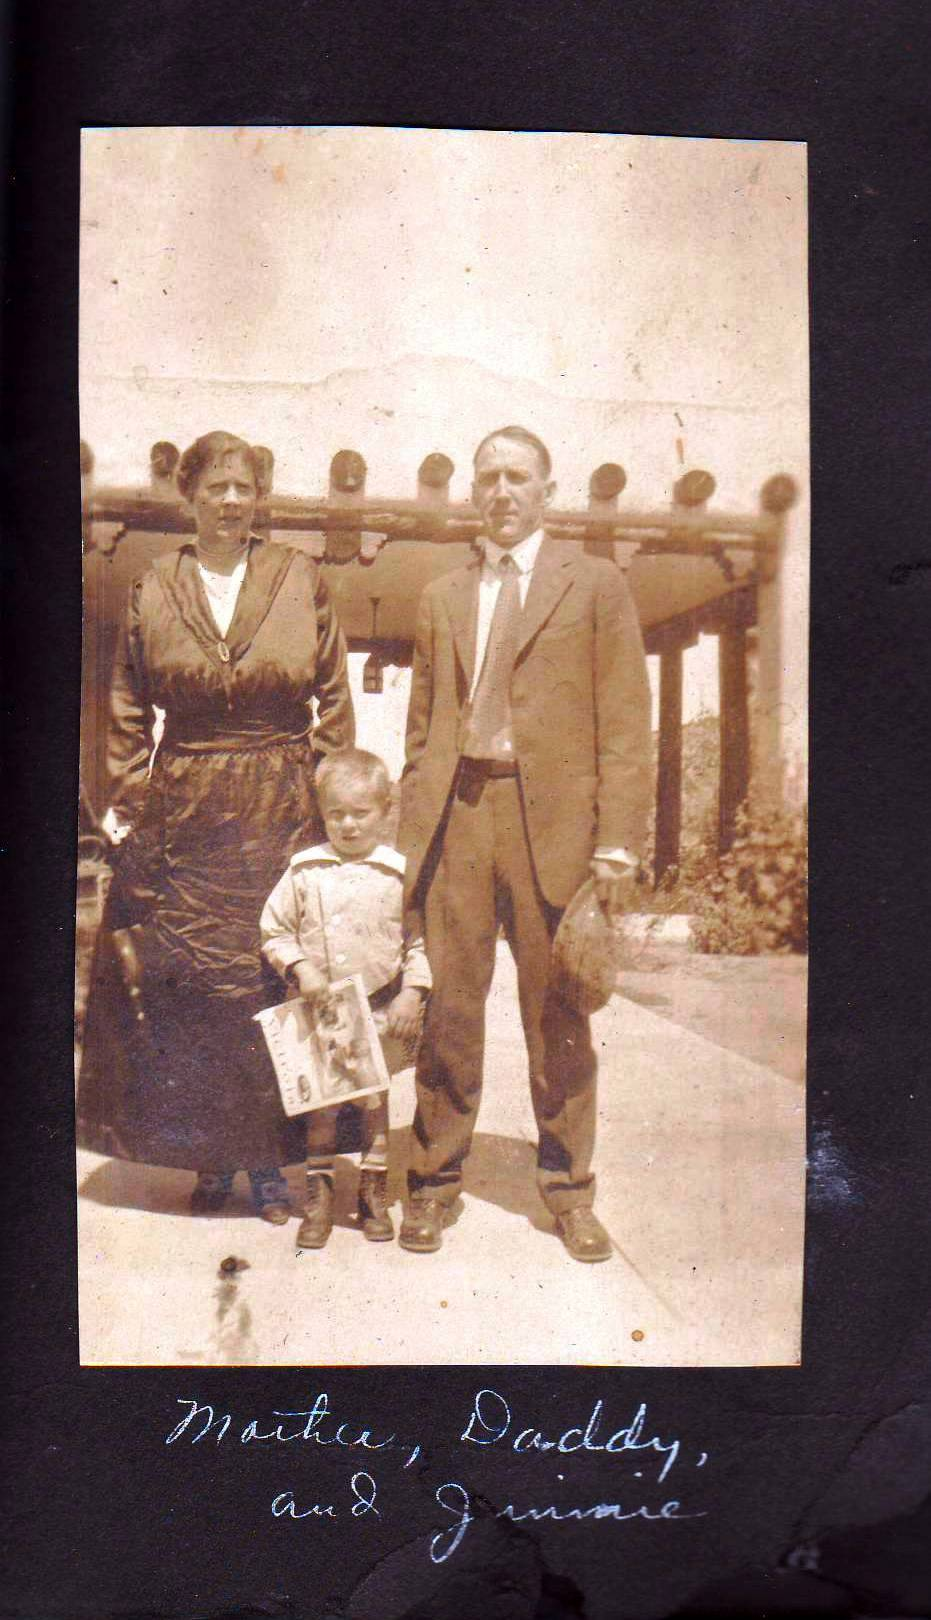 Julia, Jimmy and Jean Baptiste ,Jr.